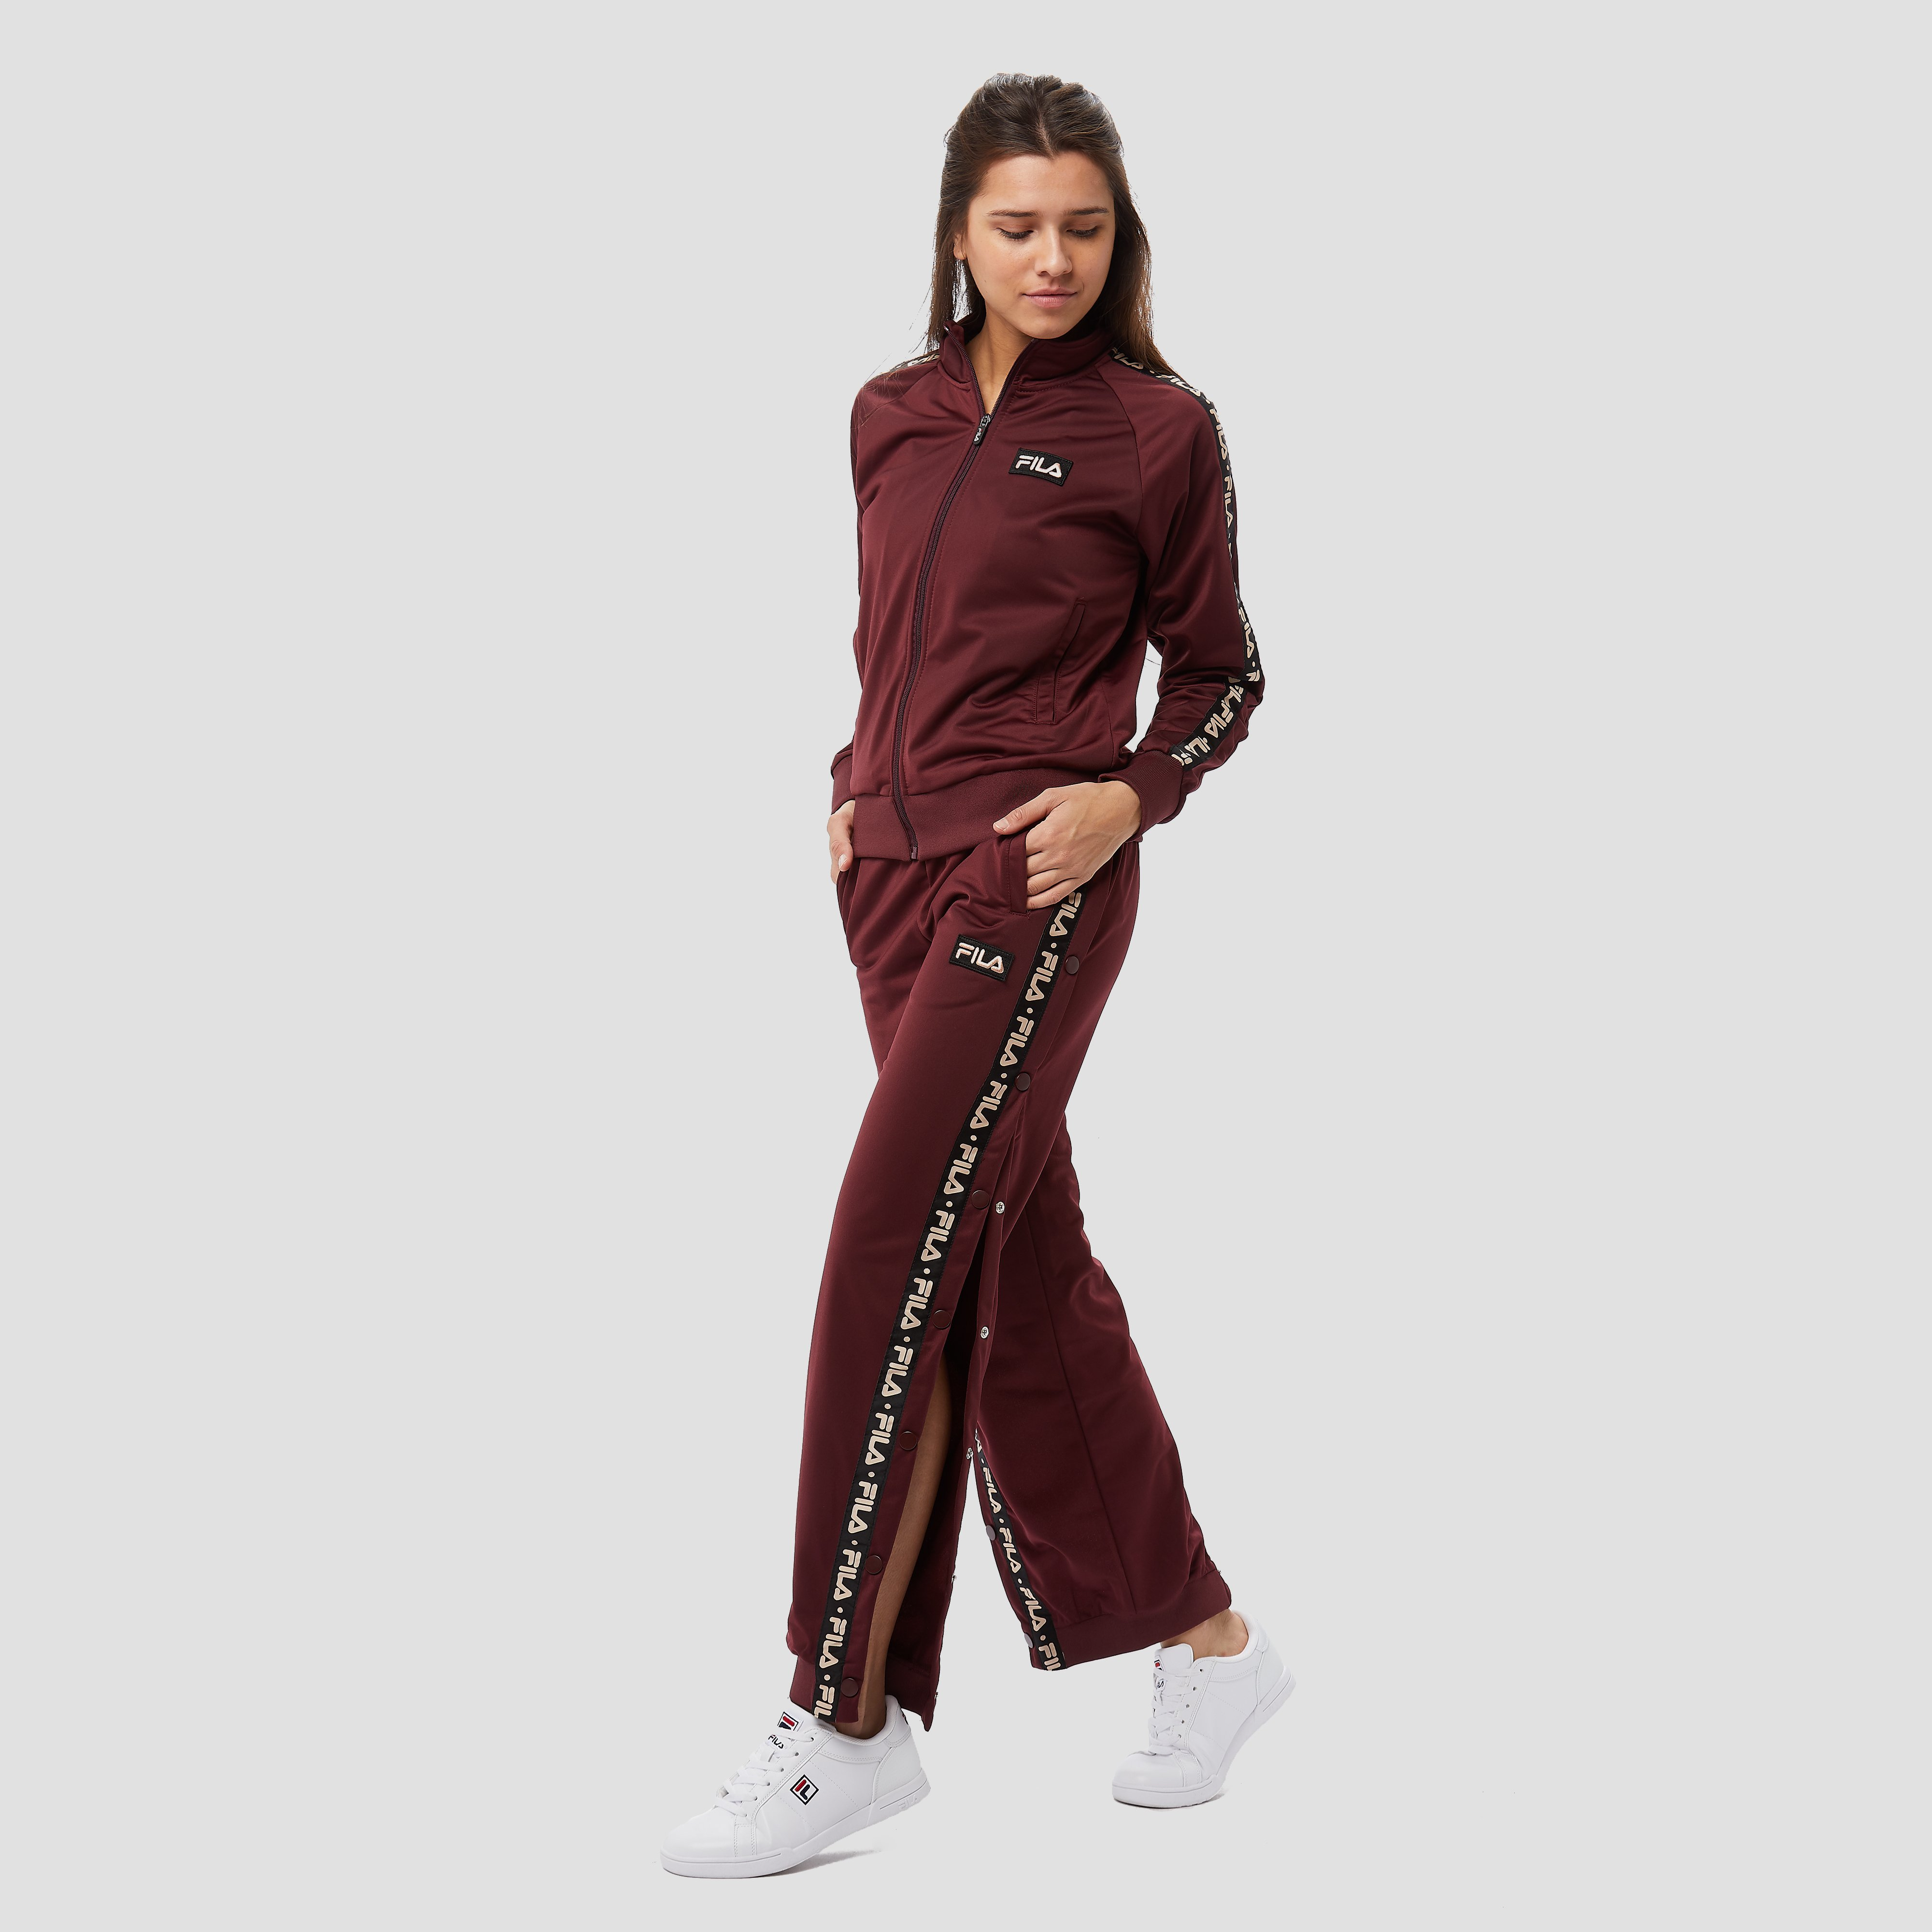 FILA SOBIO TRAININGSJAS BORDEAUX ROOD DAMES